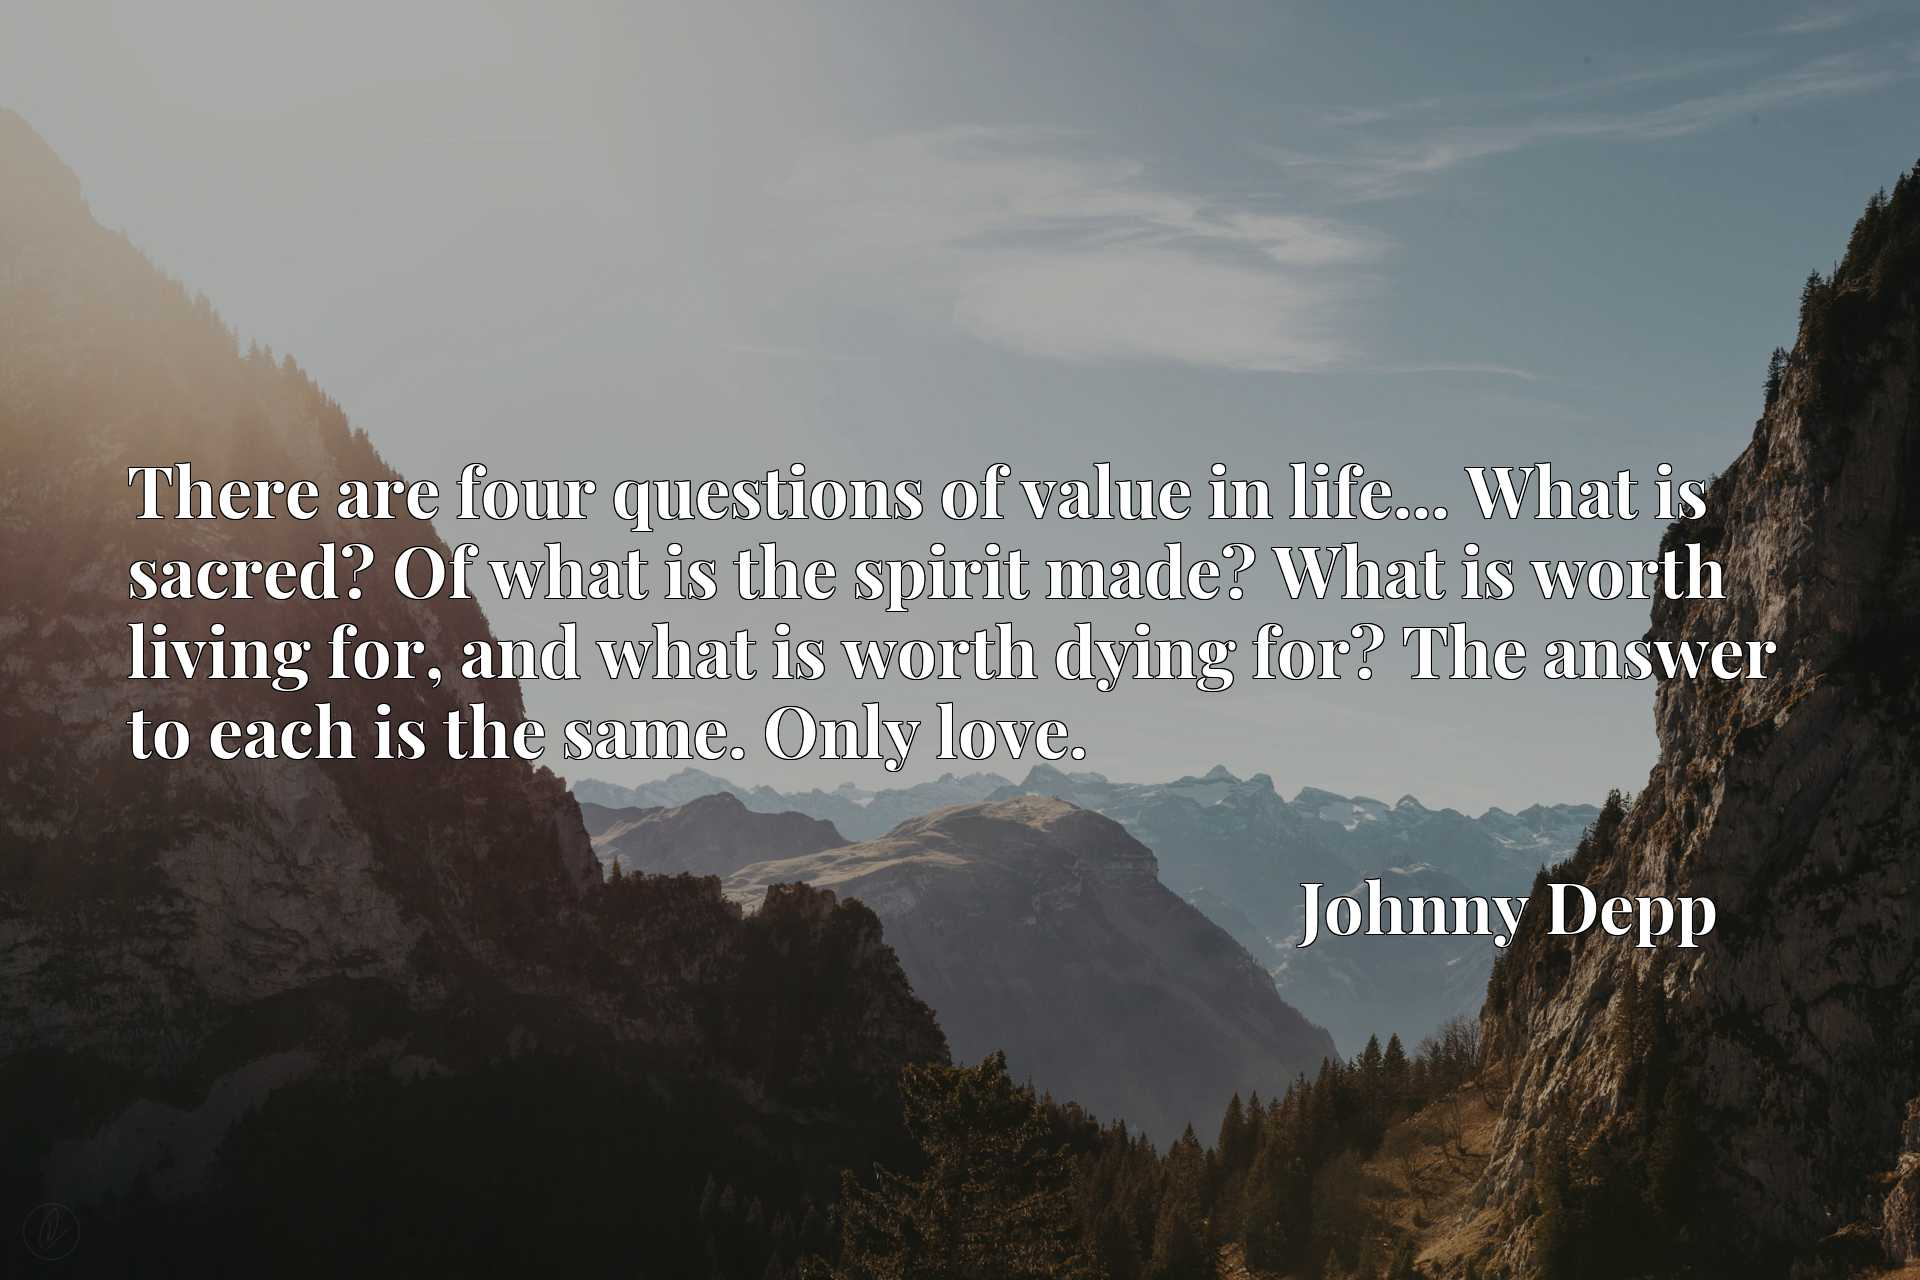 There are four questions of value in life... What is sacred? Of what is the spirit made? What is worth living for, and what is worth dying for? The answer to each is the same. Only love.